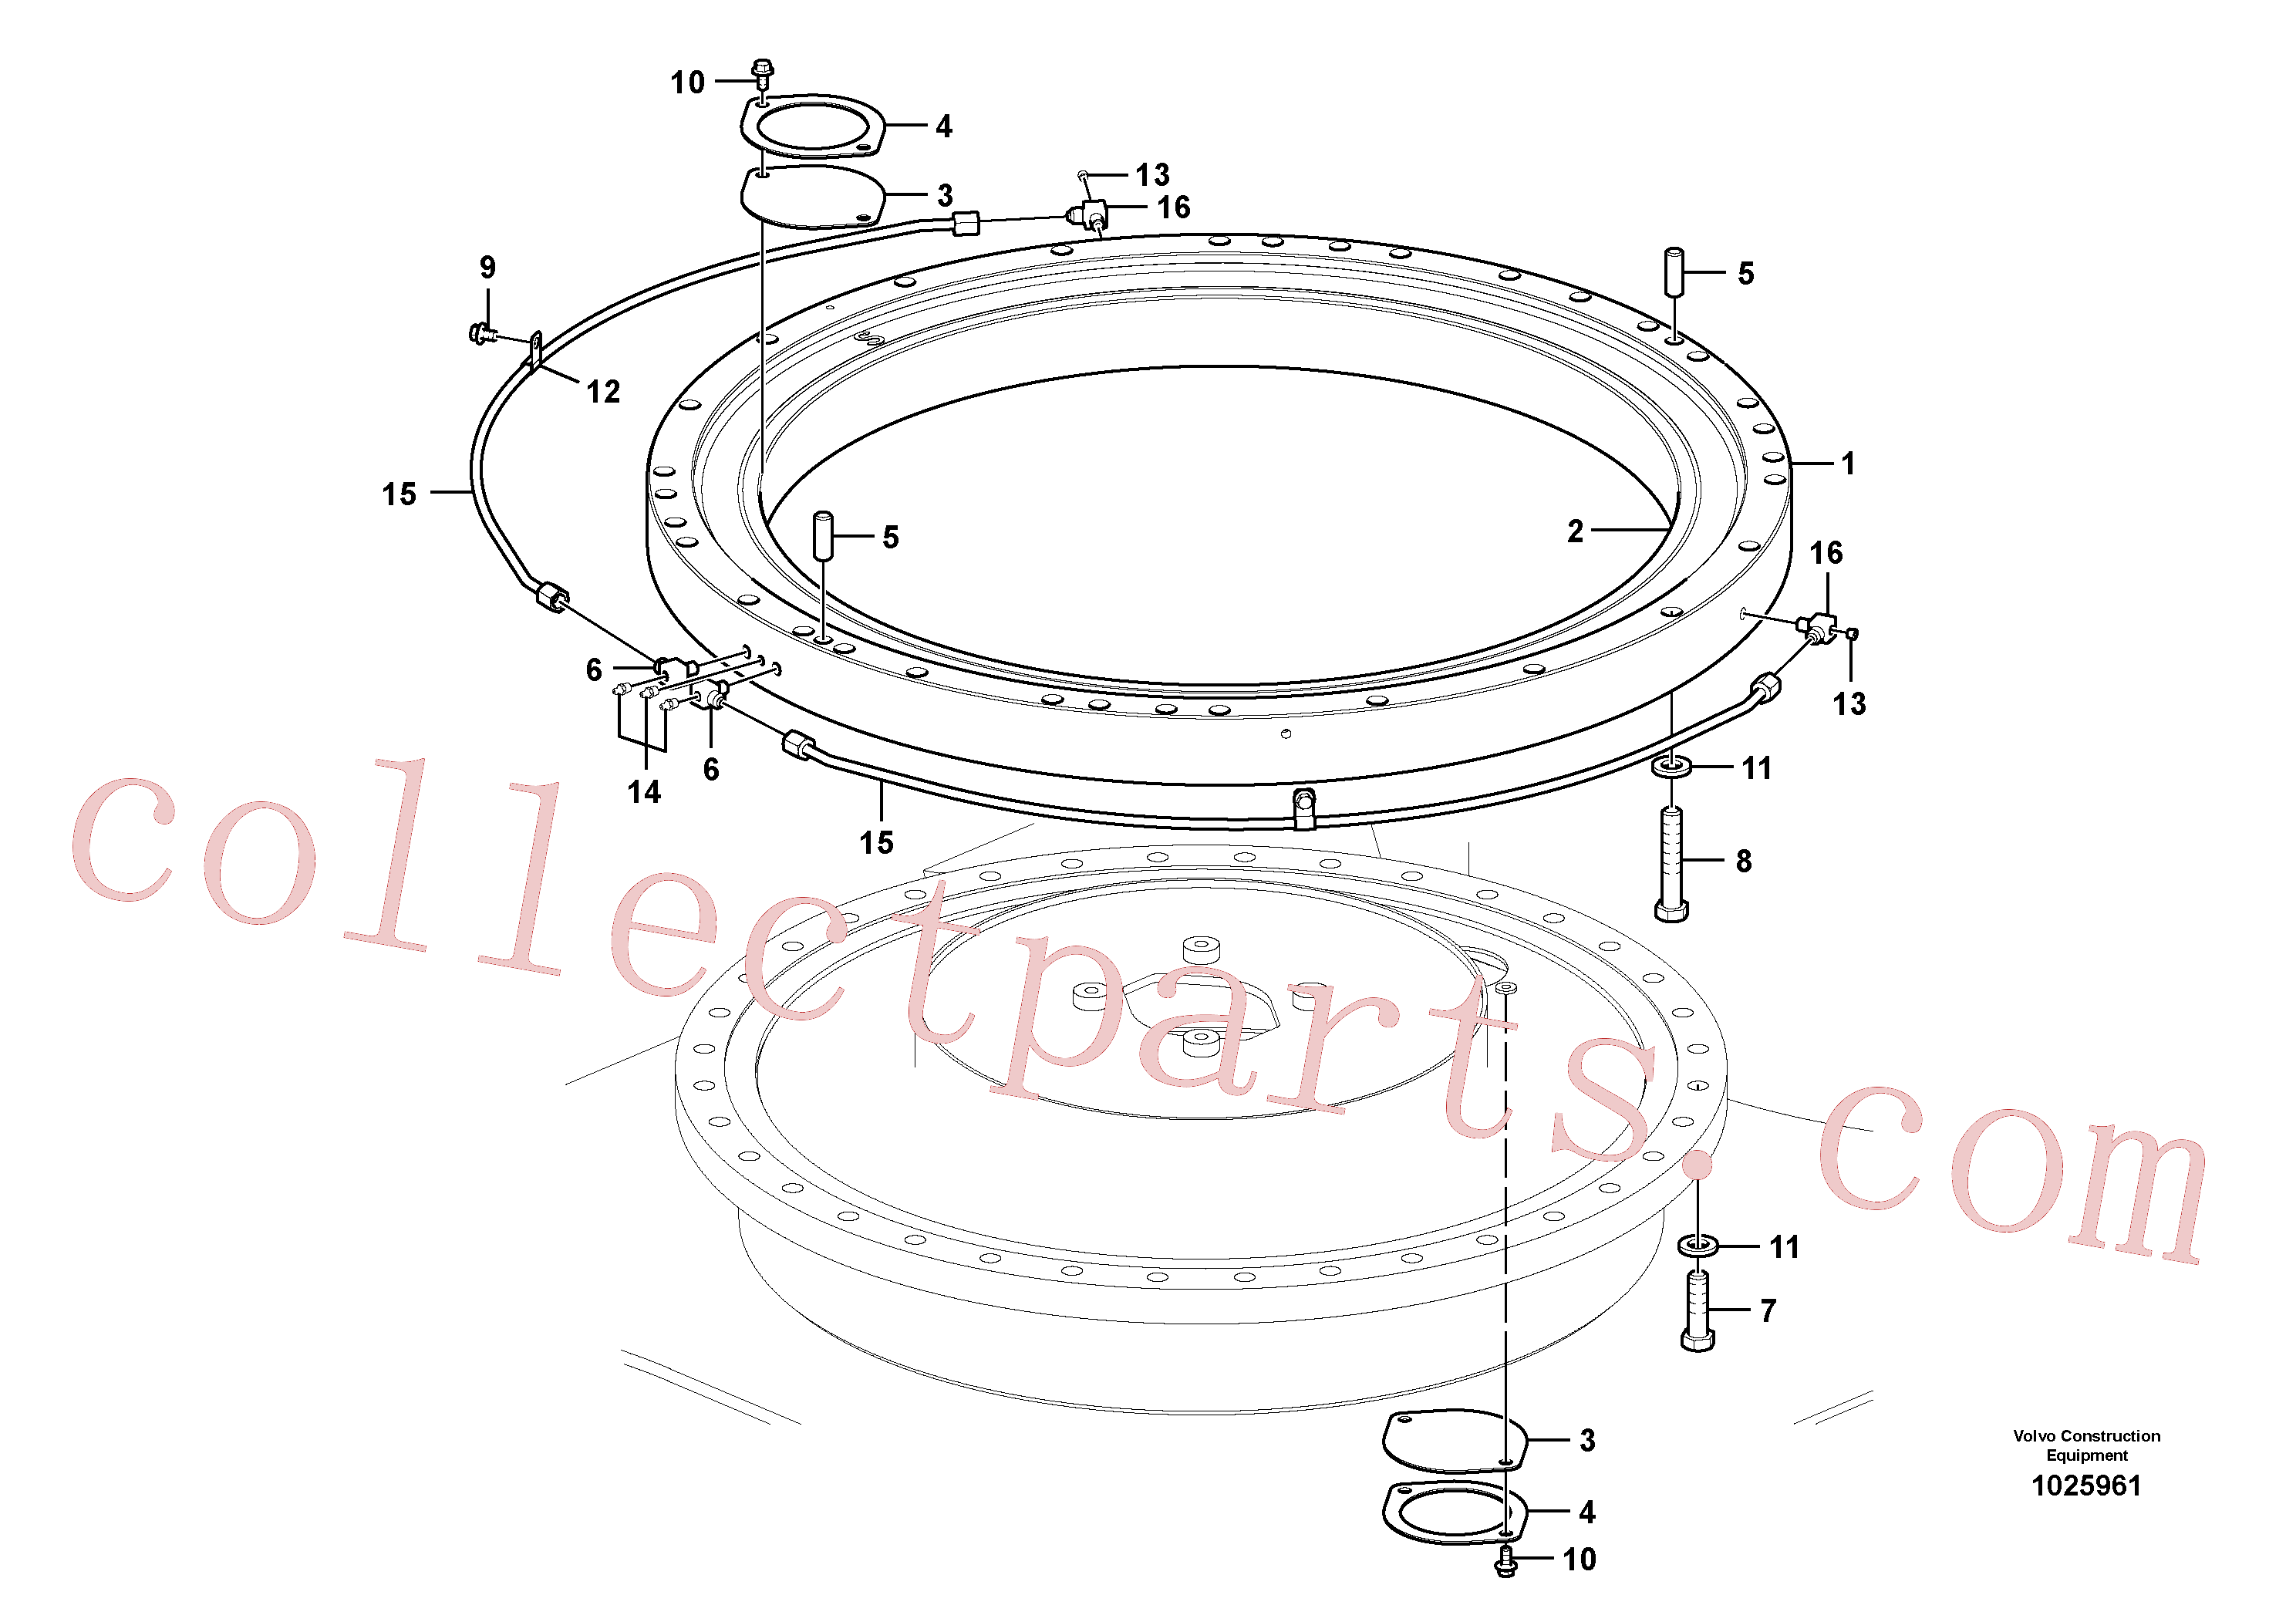 VOE14579588 for Volvo Swing system(1025961 assembly)